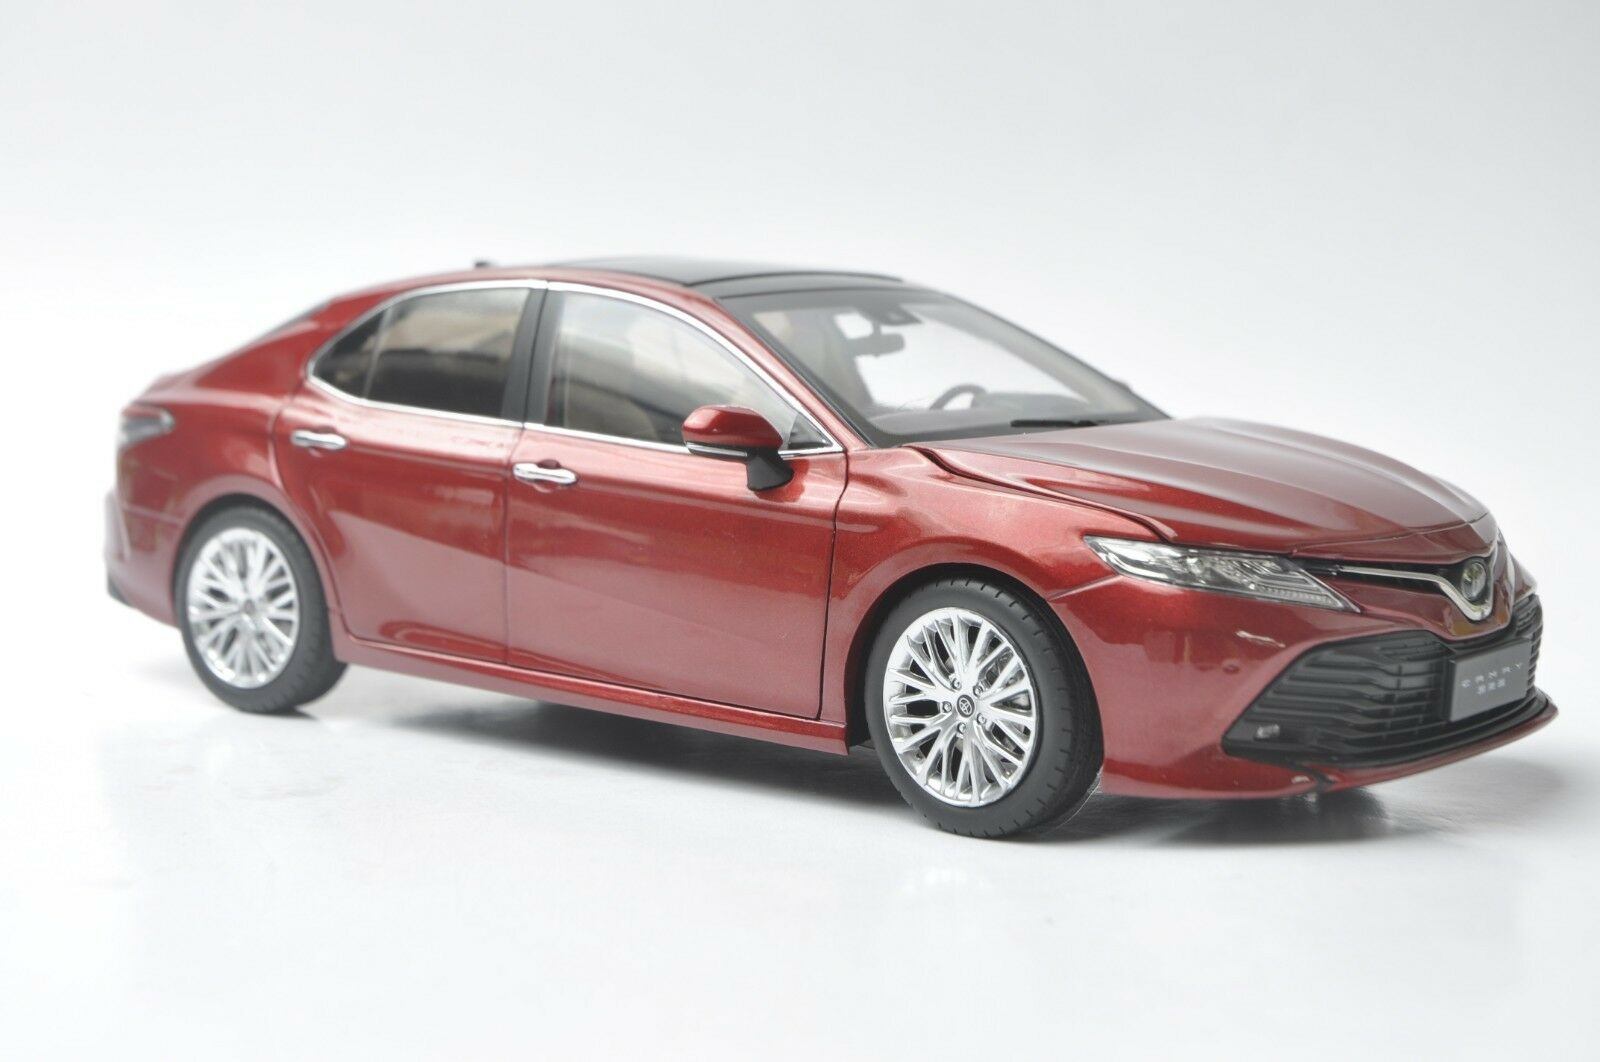 Toyota Camry 2018 car model in scale 1:18 rosso